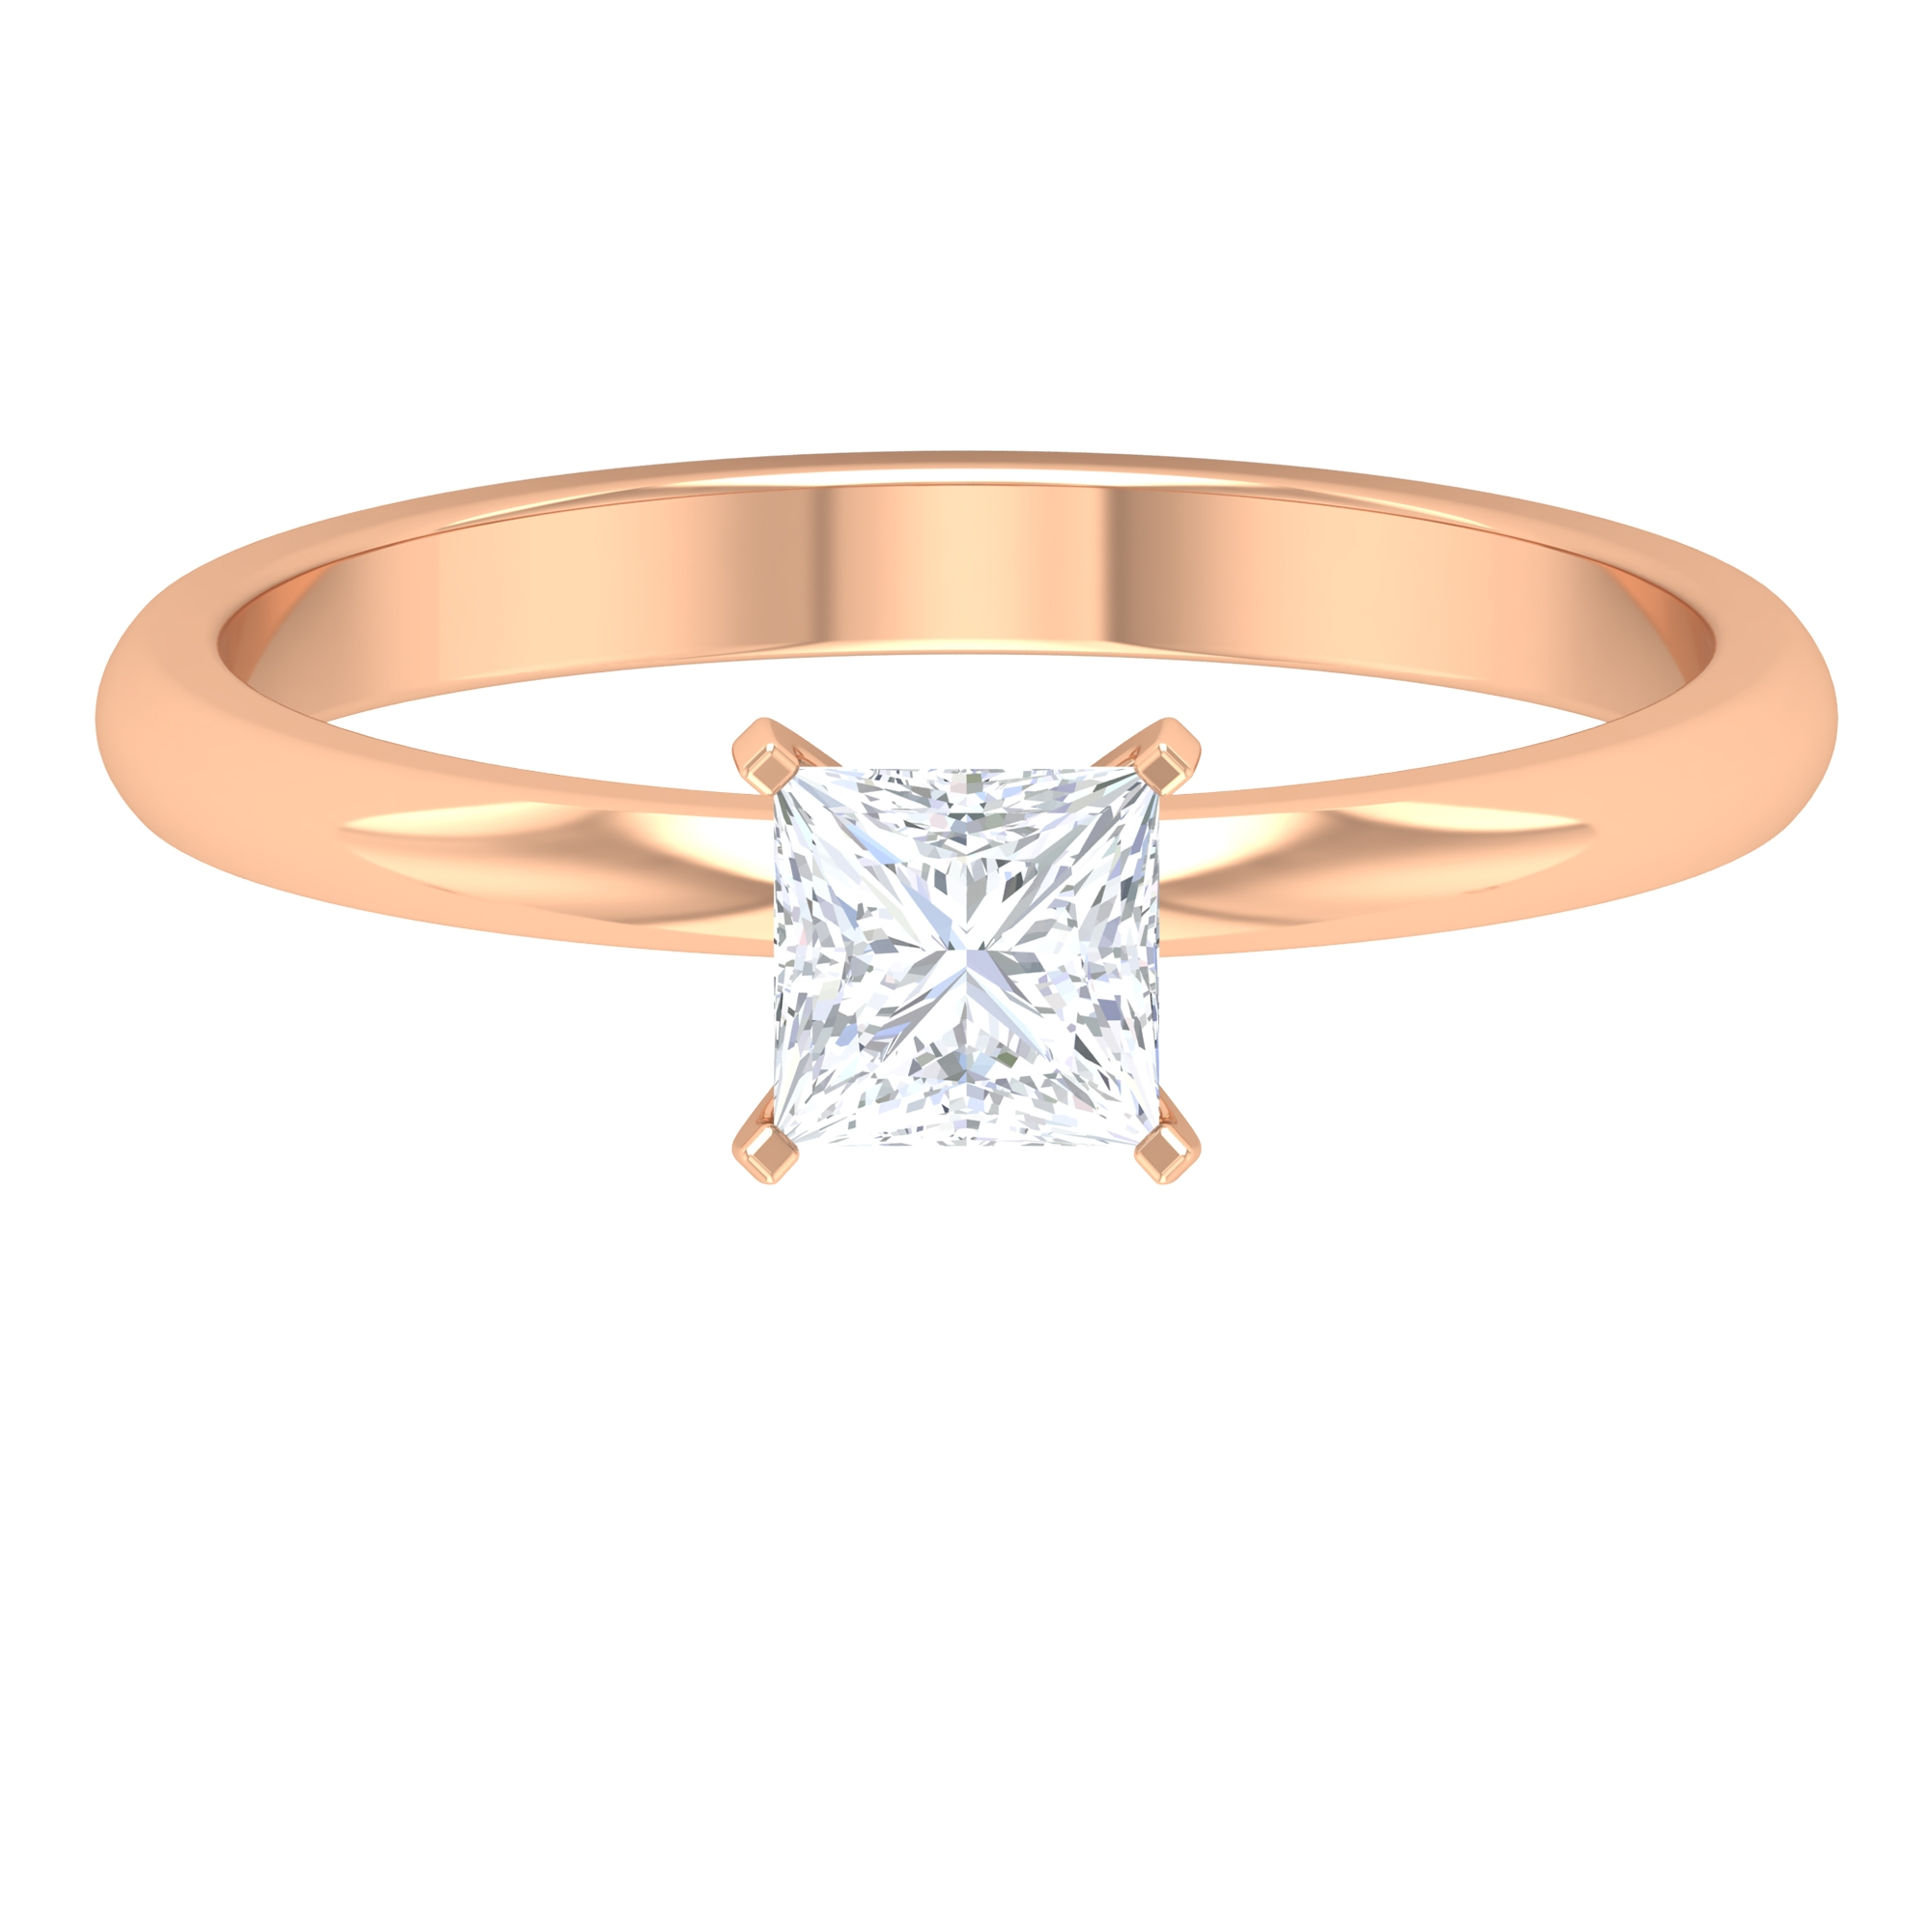 4.5X4.5 MM Princess Cut Diamond Solitaire Engagement Ring For Women in Prong Setting